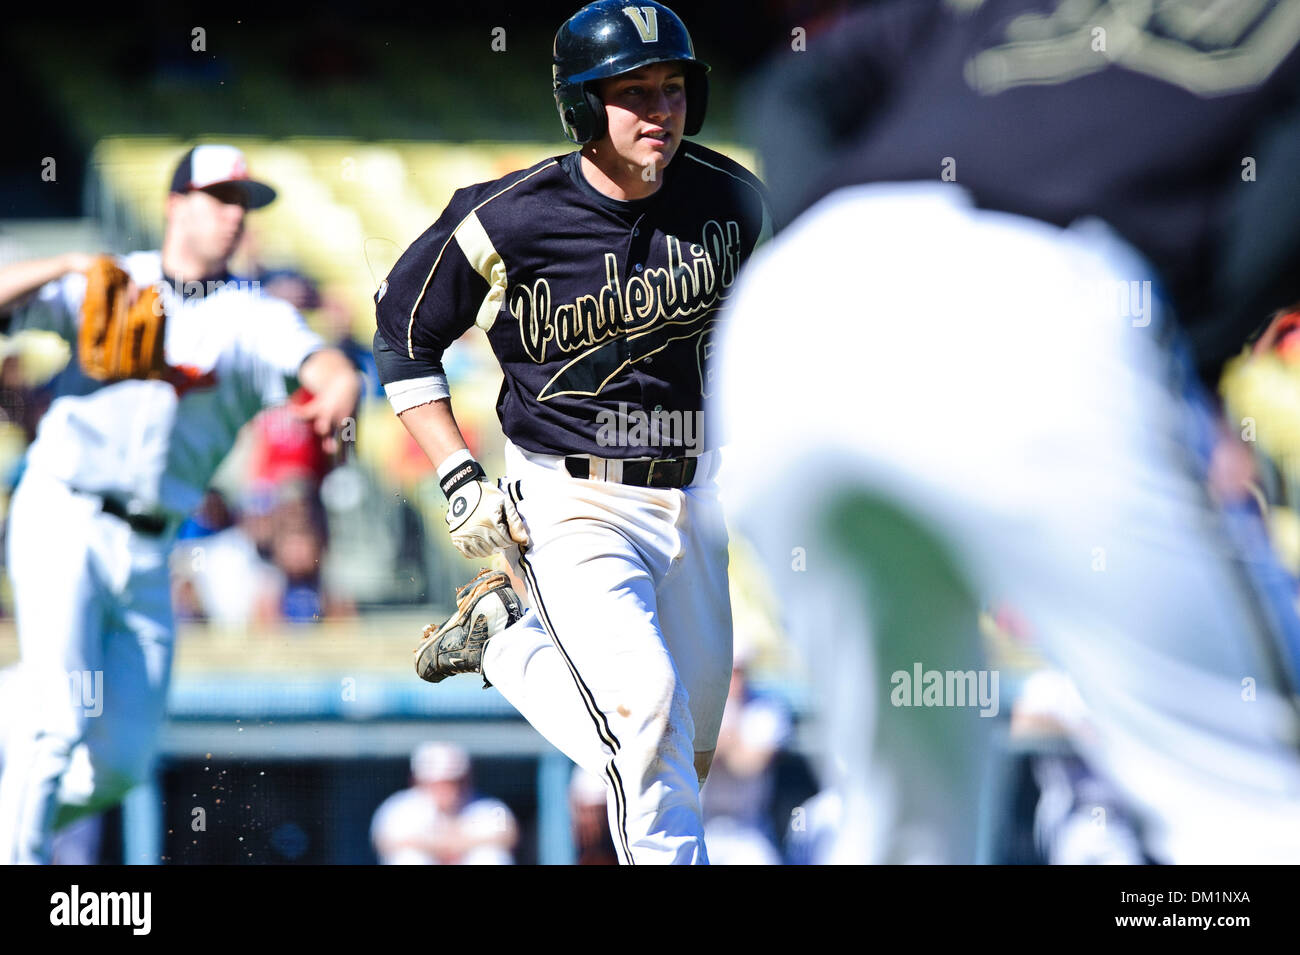 Feb. 28, 2010 - Los Angeles, California, U.S - 28 February 2010:  Vandy's Brian Harris runs down the first base - Stock Image